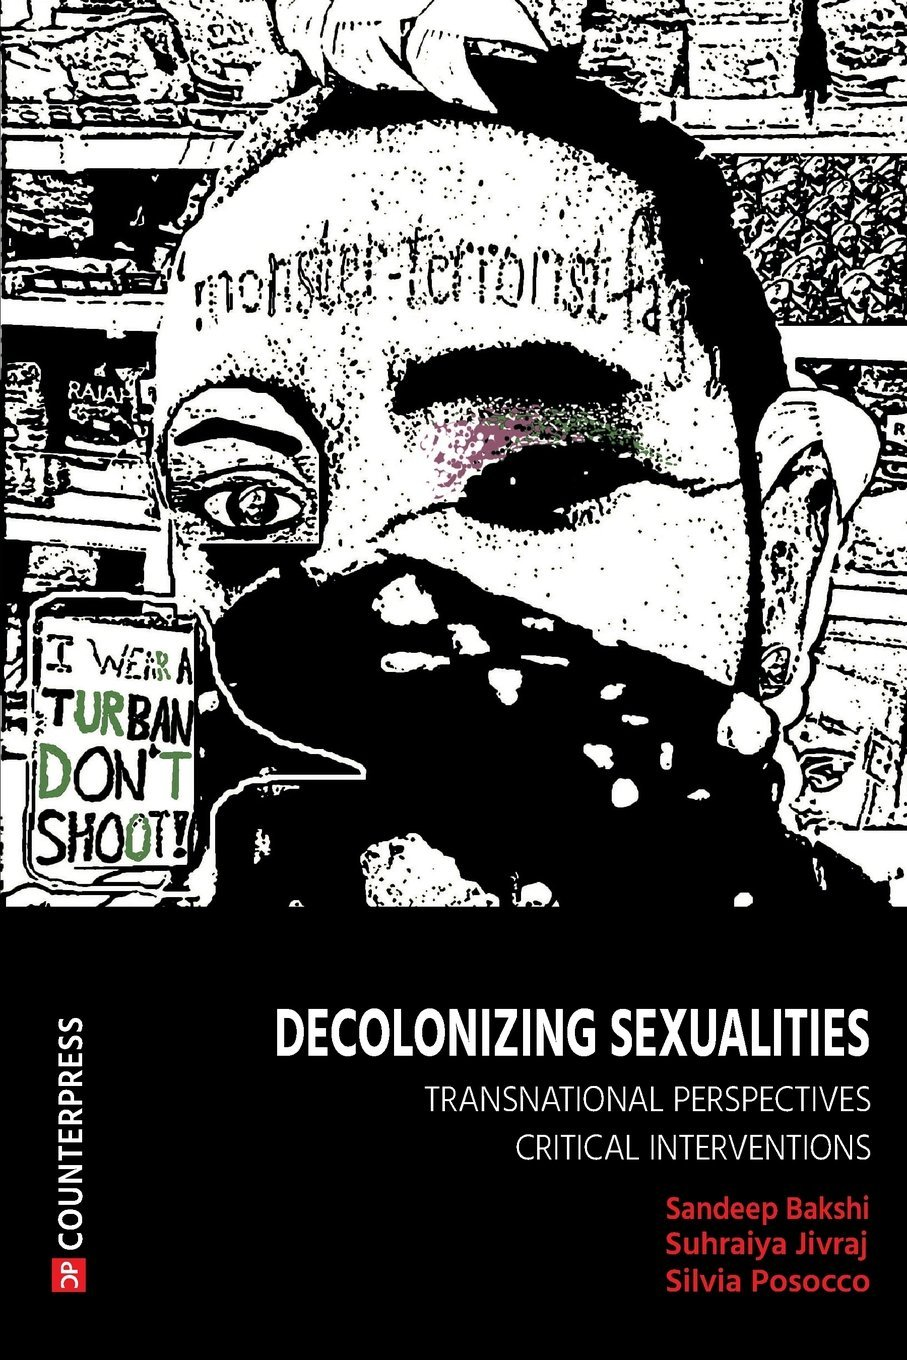 Decolonizing Sexualities: Transnational Perspectives, Critical Interventions: Sandeep Bakshi, Suhraiya Jivraj, Silvia Posocco: 9781910761021: Amazon.com: ...